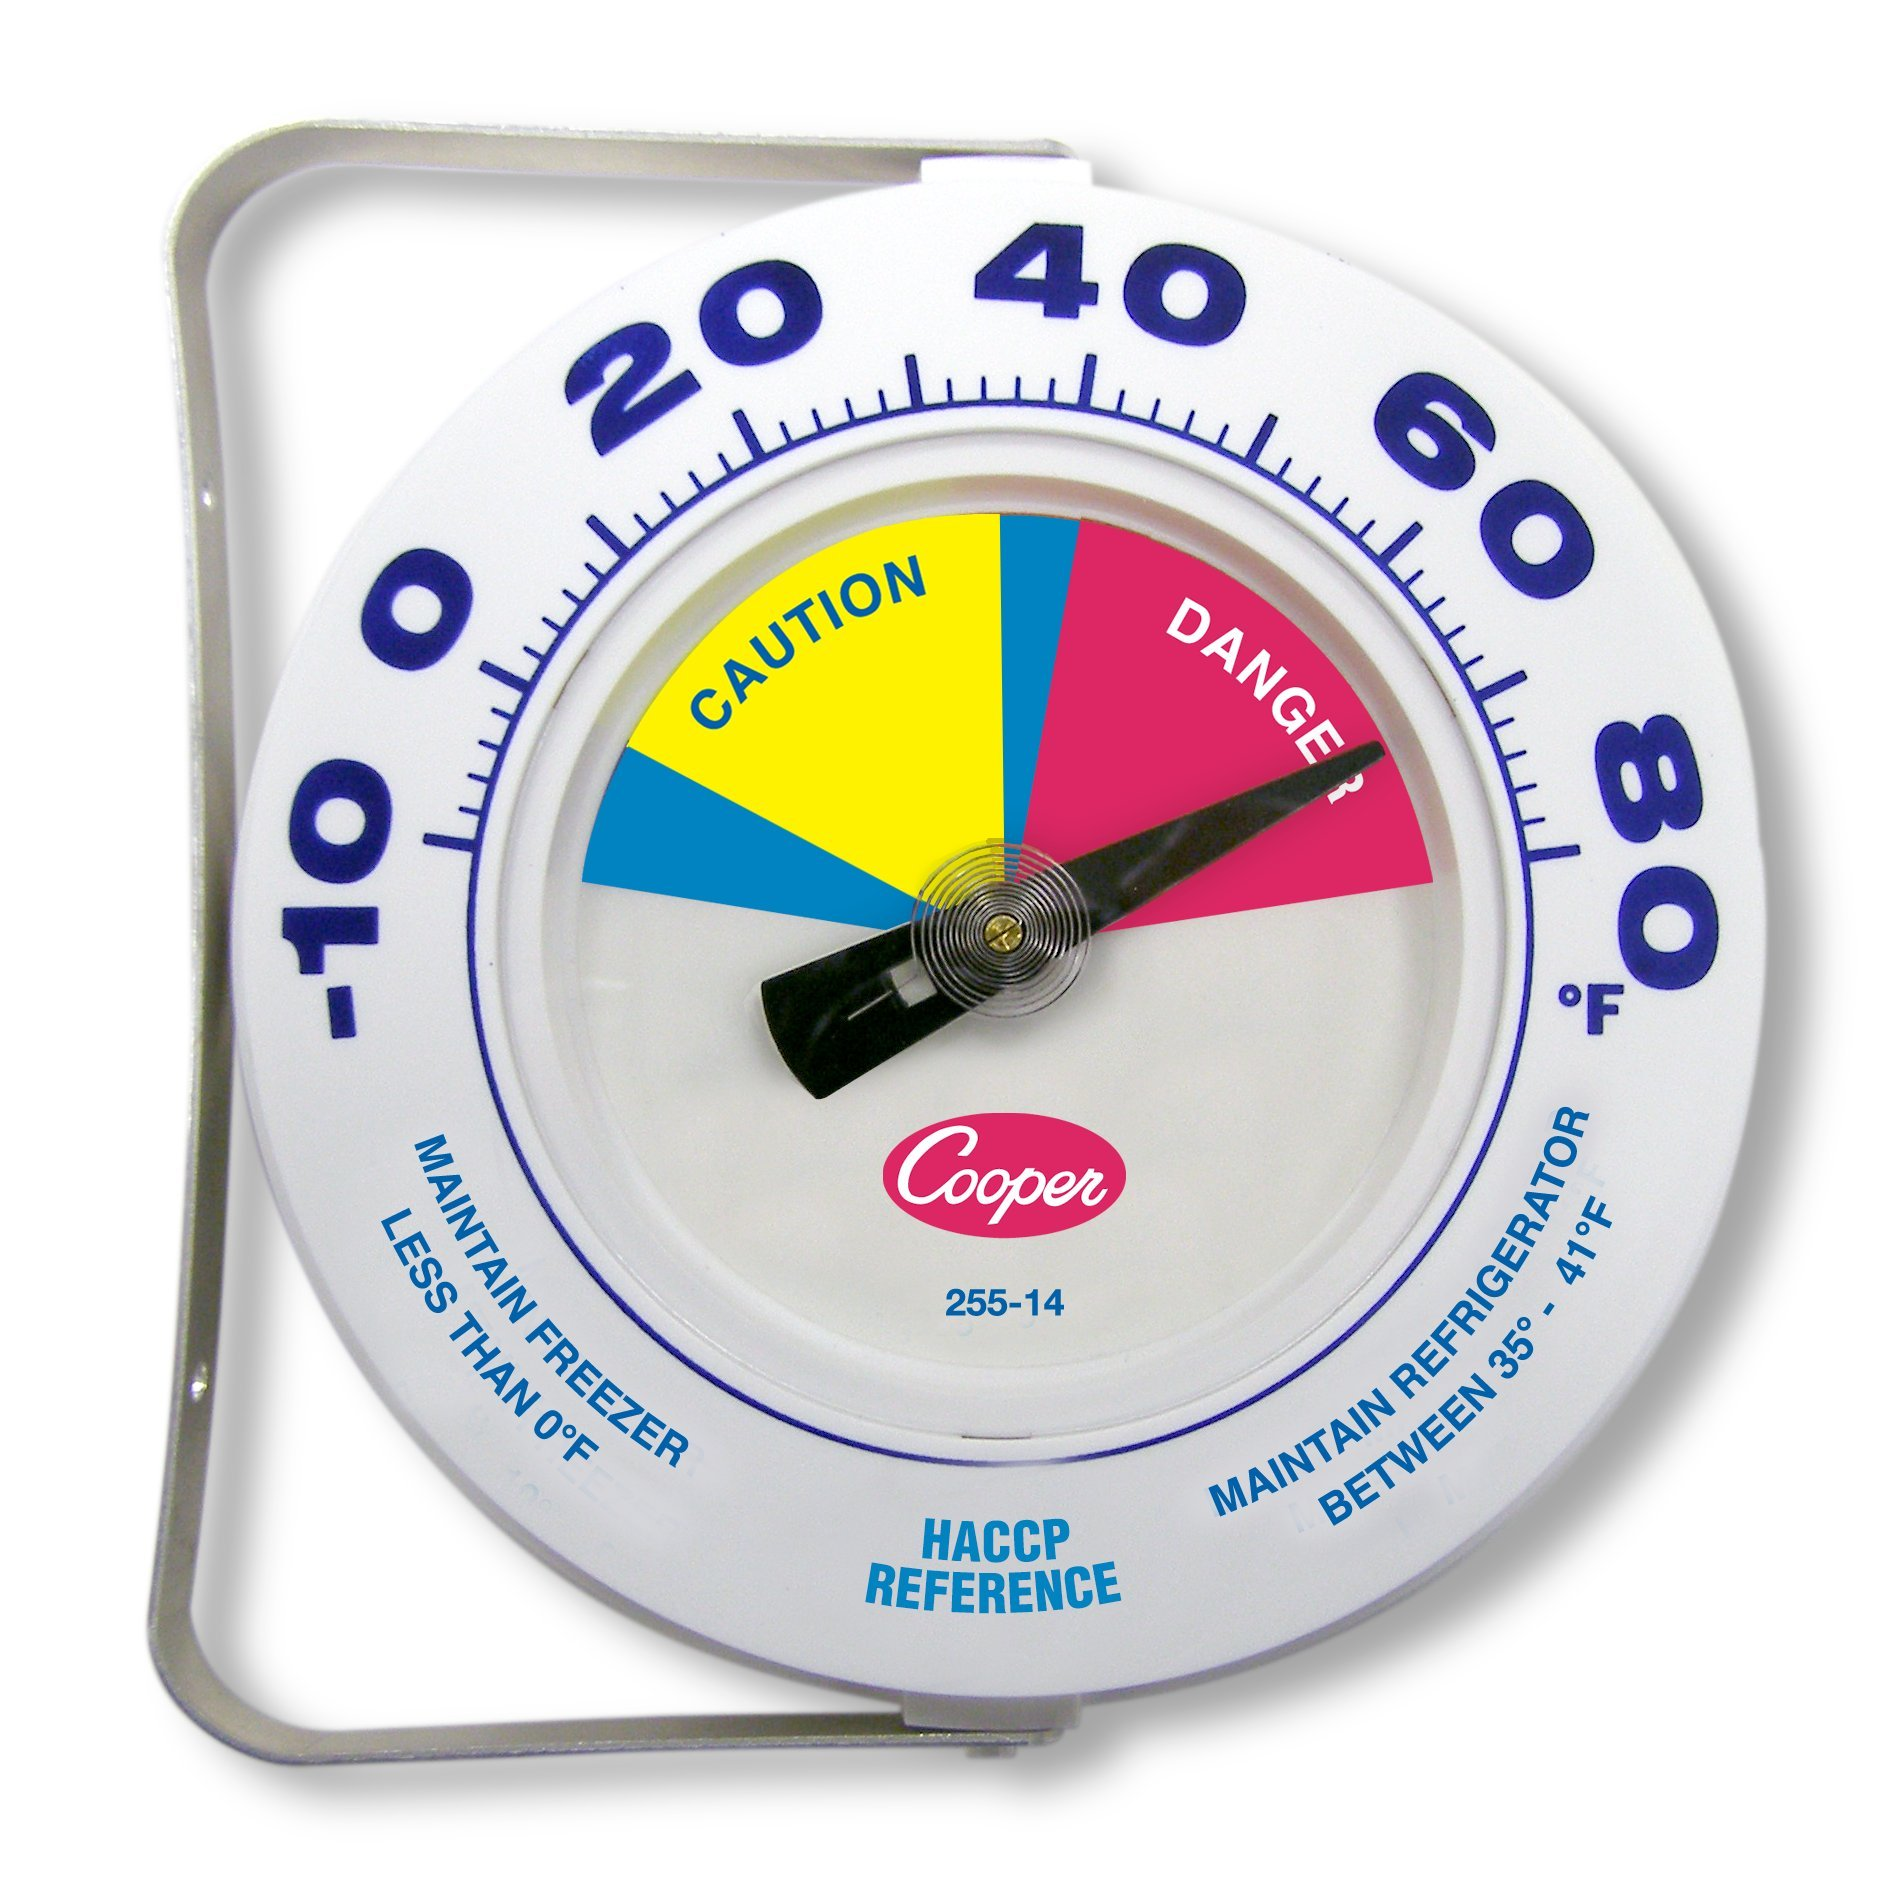 Cooper-Atkins 255-14-1 Bi-Metal HACCP Refrigerator and Freezer Thermometer, 6'' Dial Size, -10 to 80 Degrees F Temperature Range by Cooper